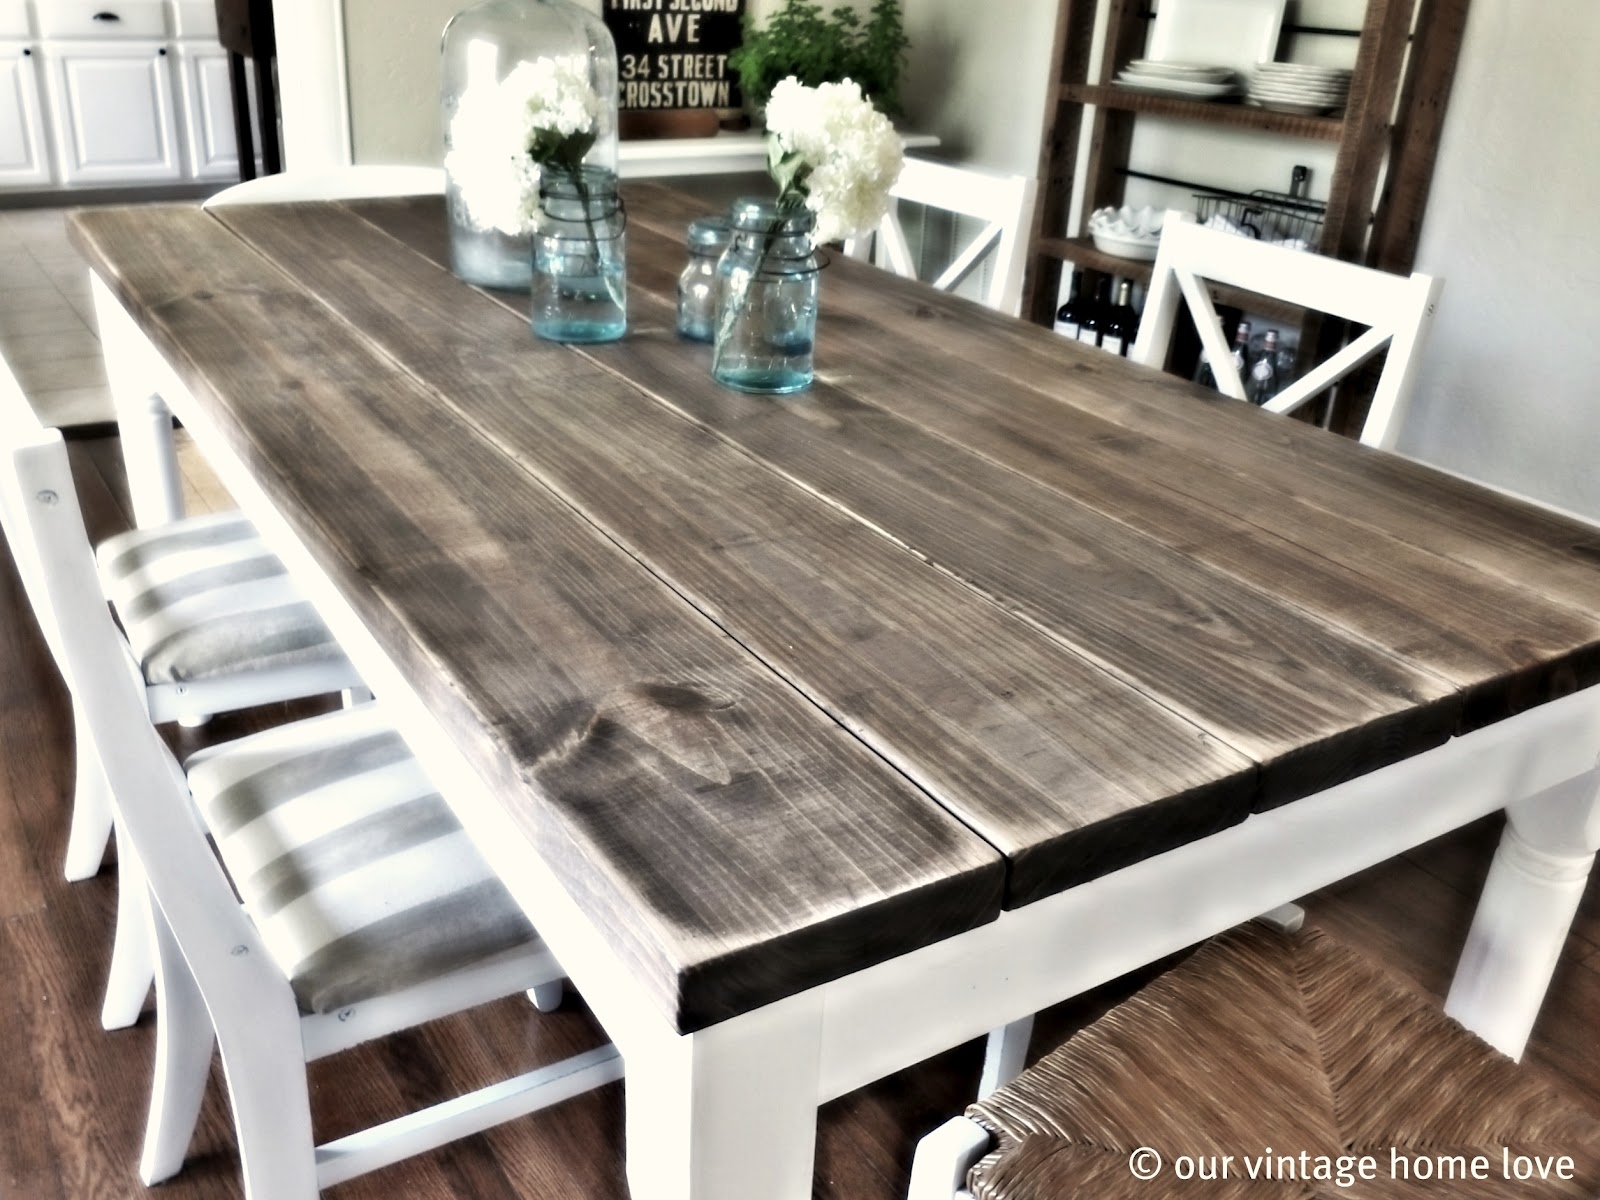 vintage home love: dining room table tutorial